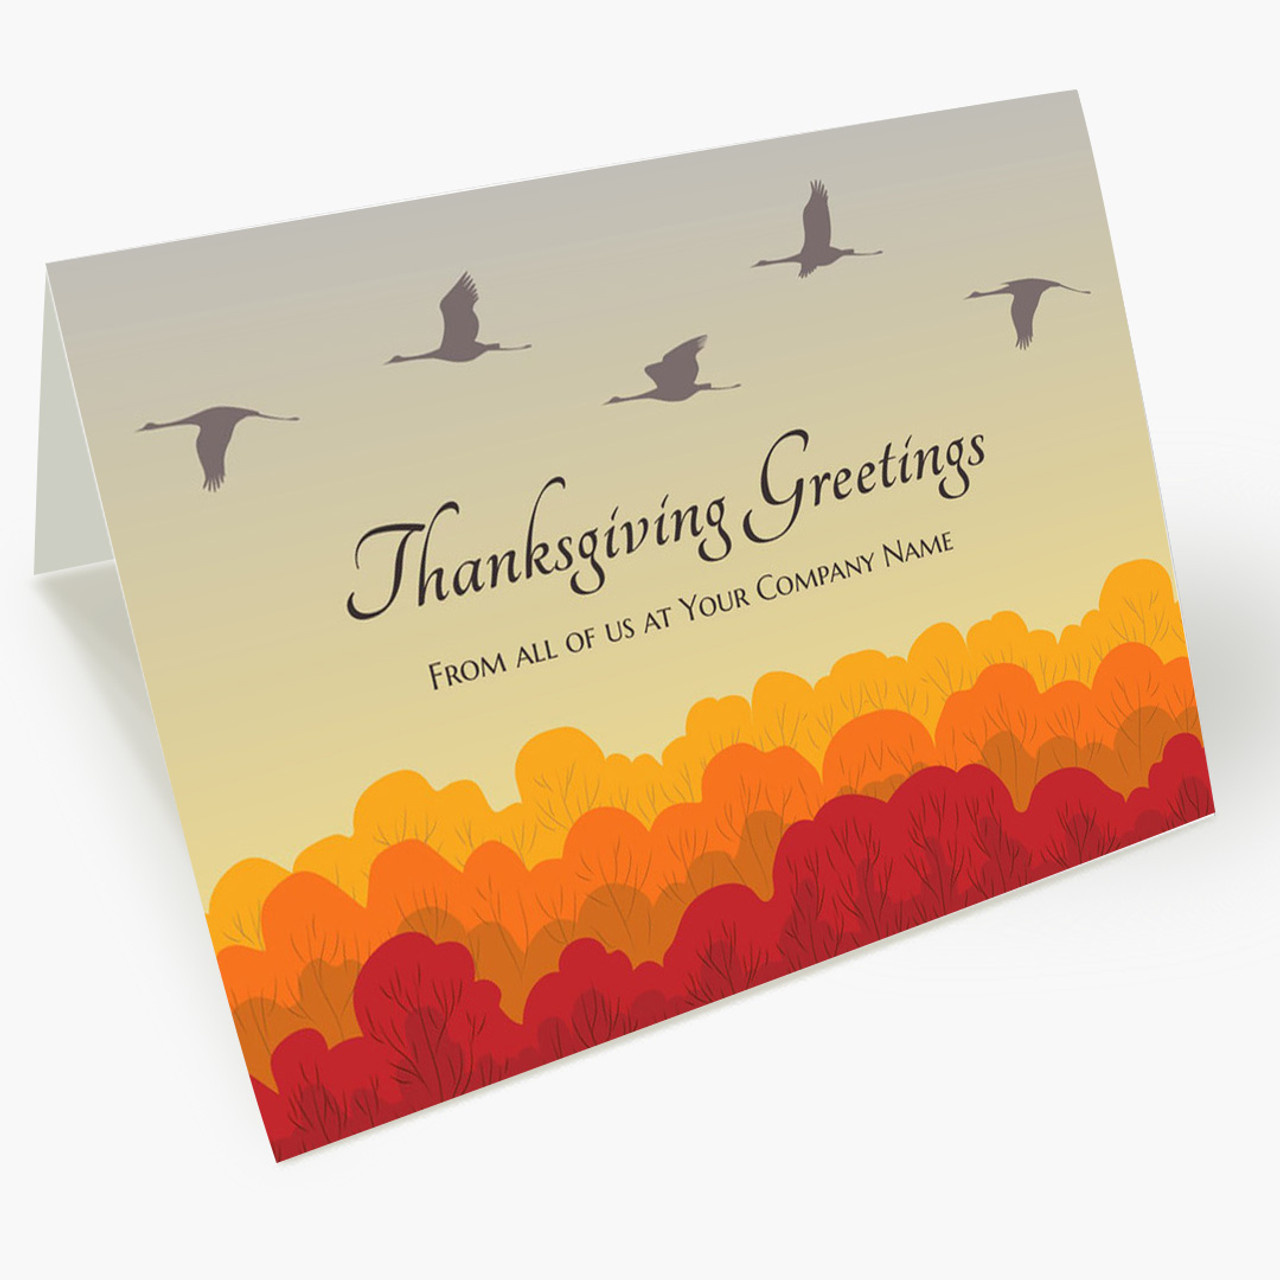 Geese Greetings Thanksgiving Card